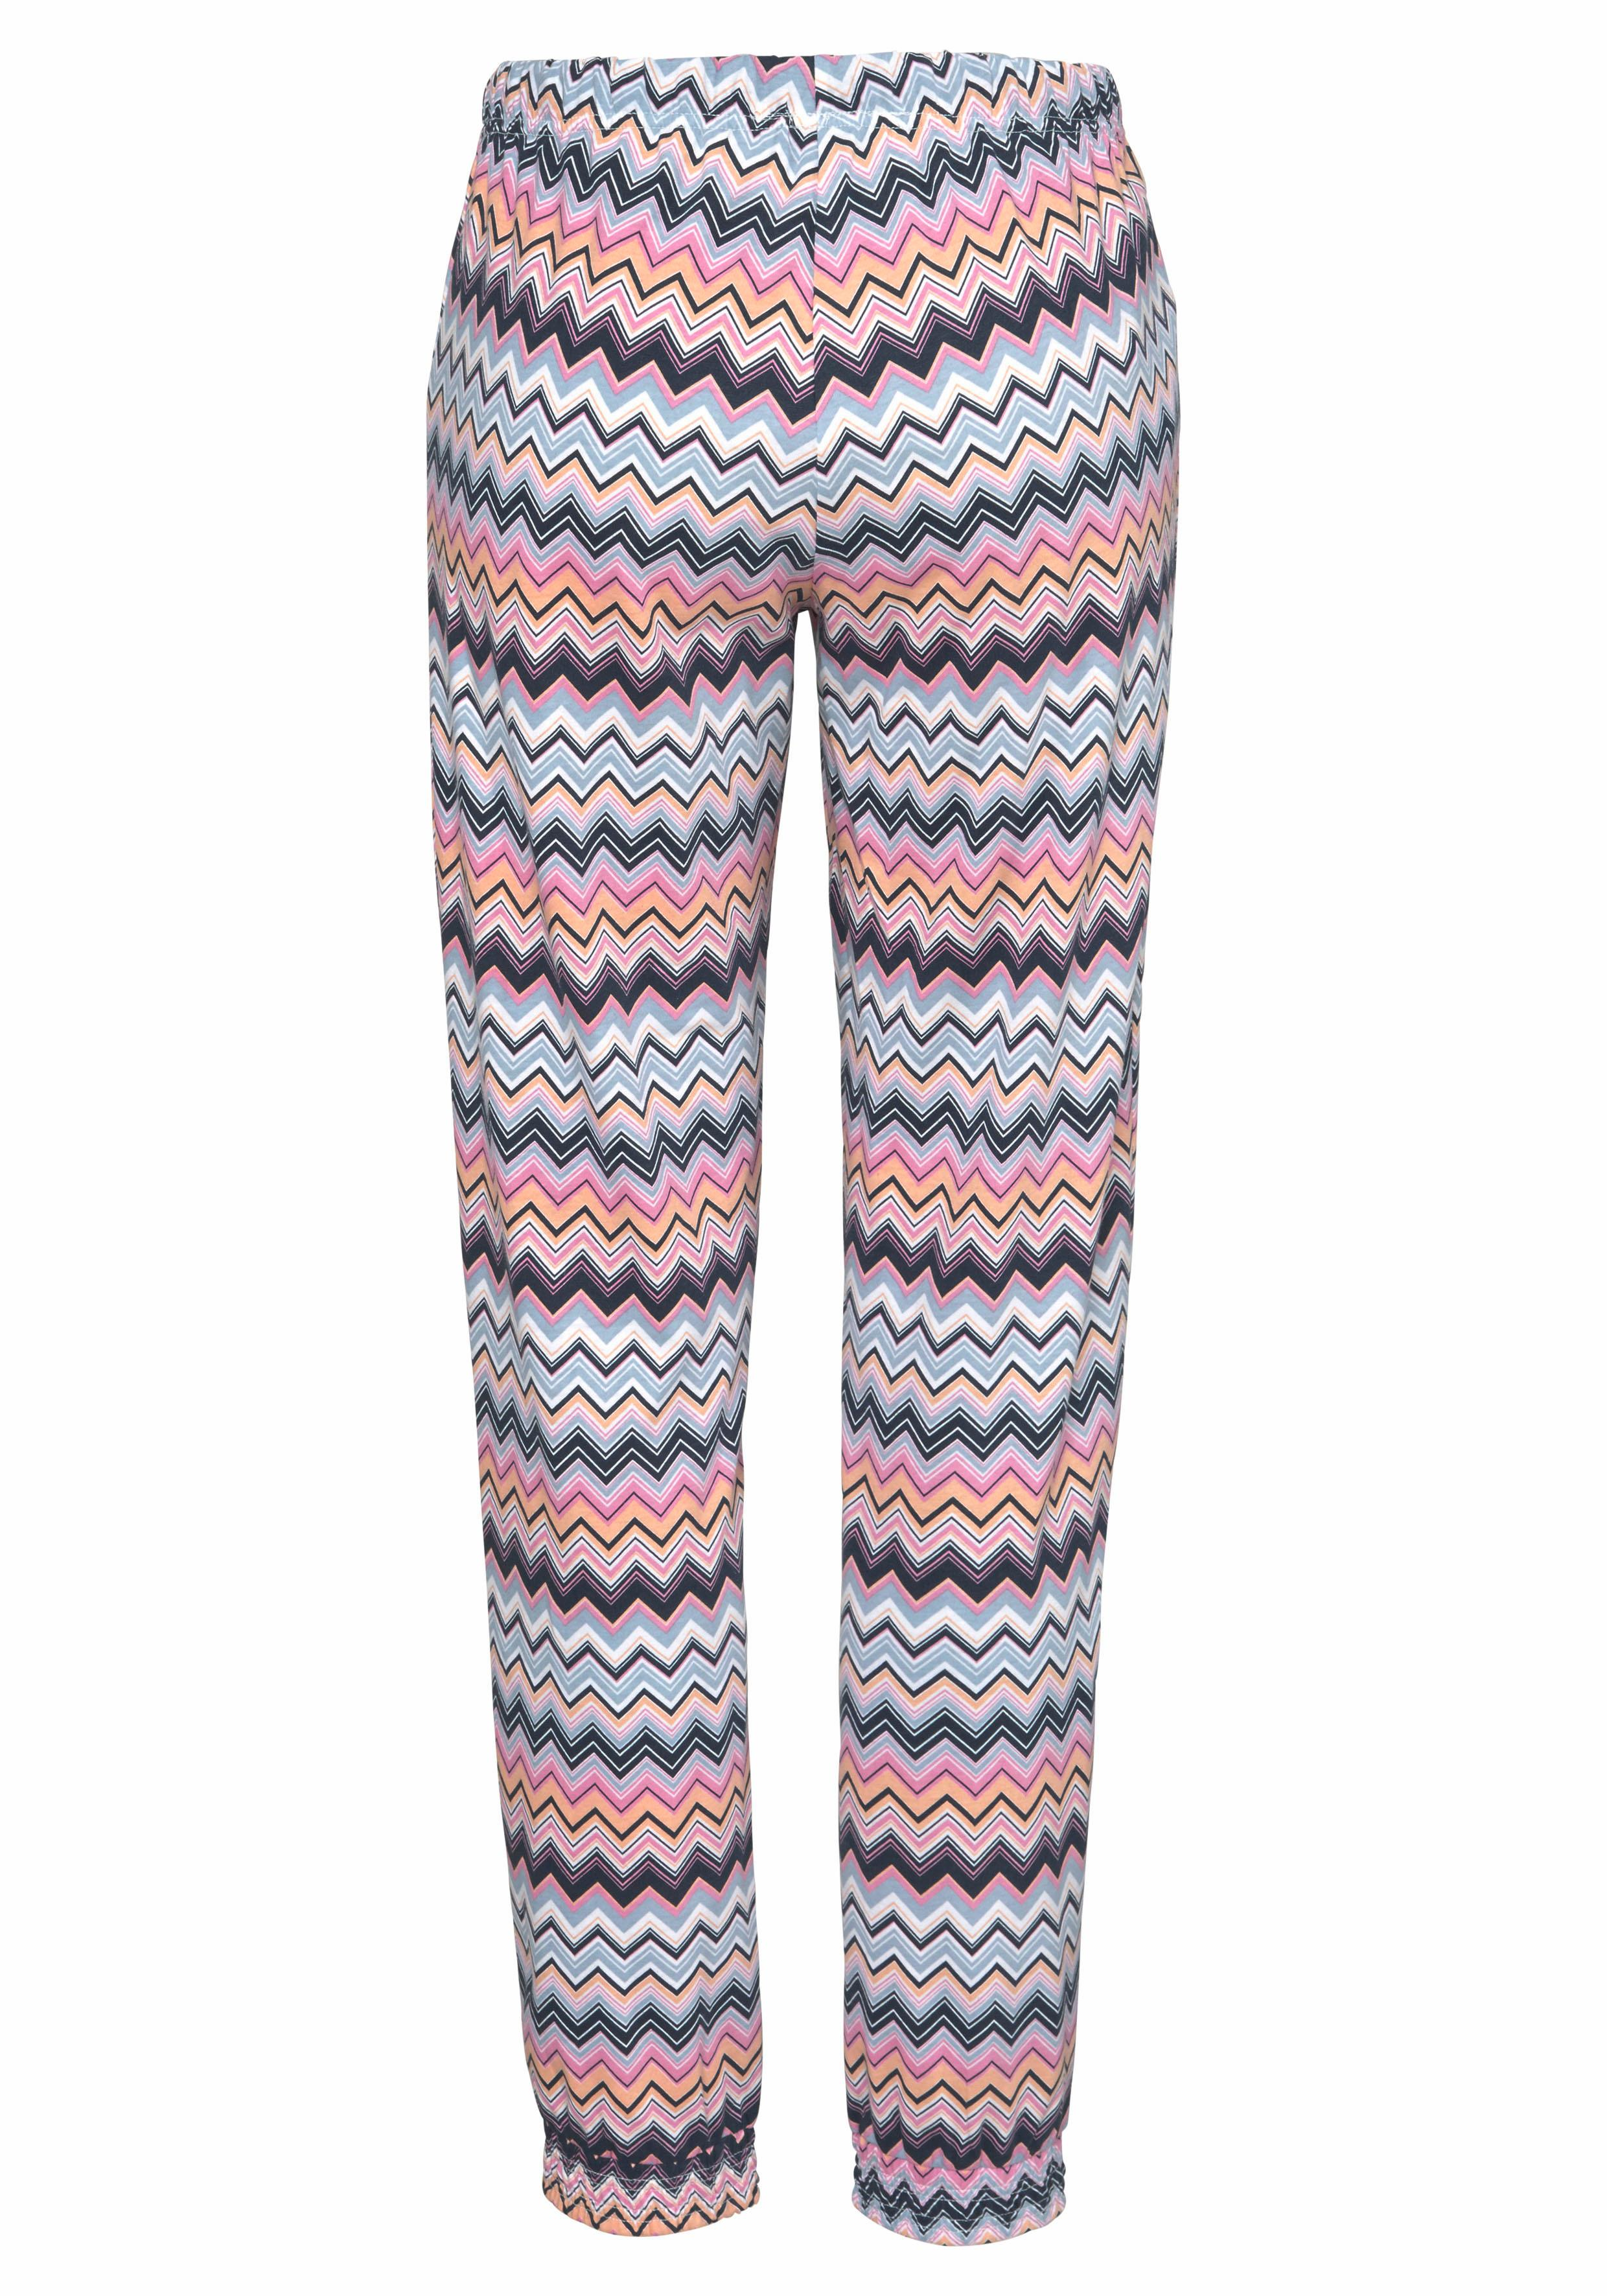 Vivance Dreams Pyjamahose